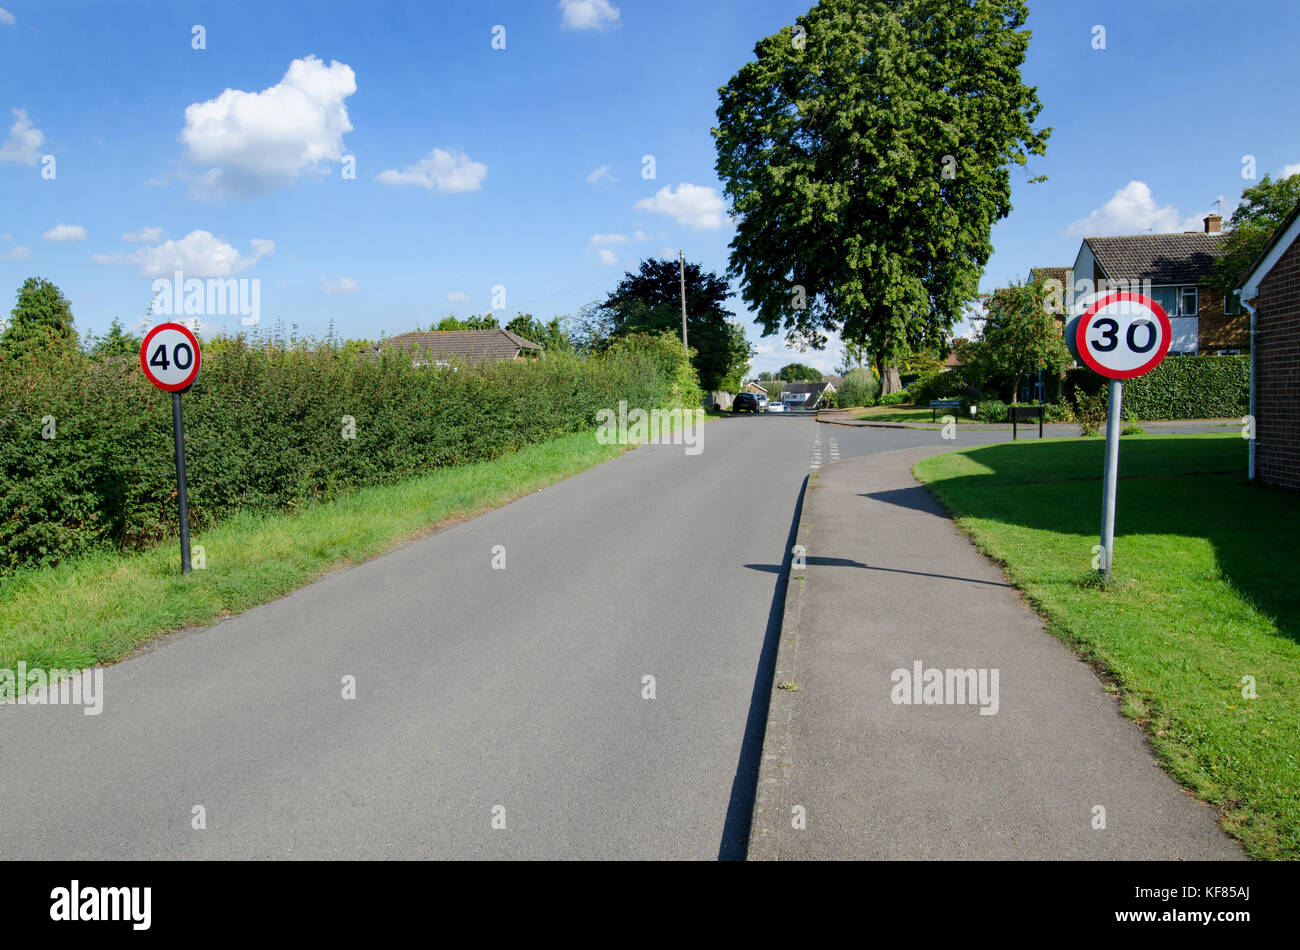 Contraditctory speed limit signs entering a village (Boughton Monchelsea) in Kent, England - Stock Image